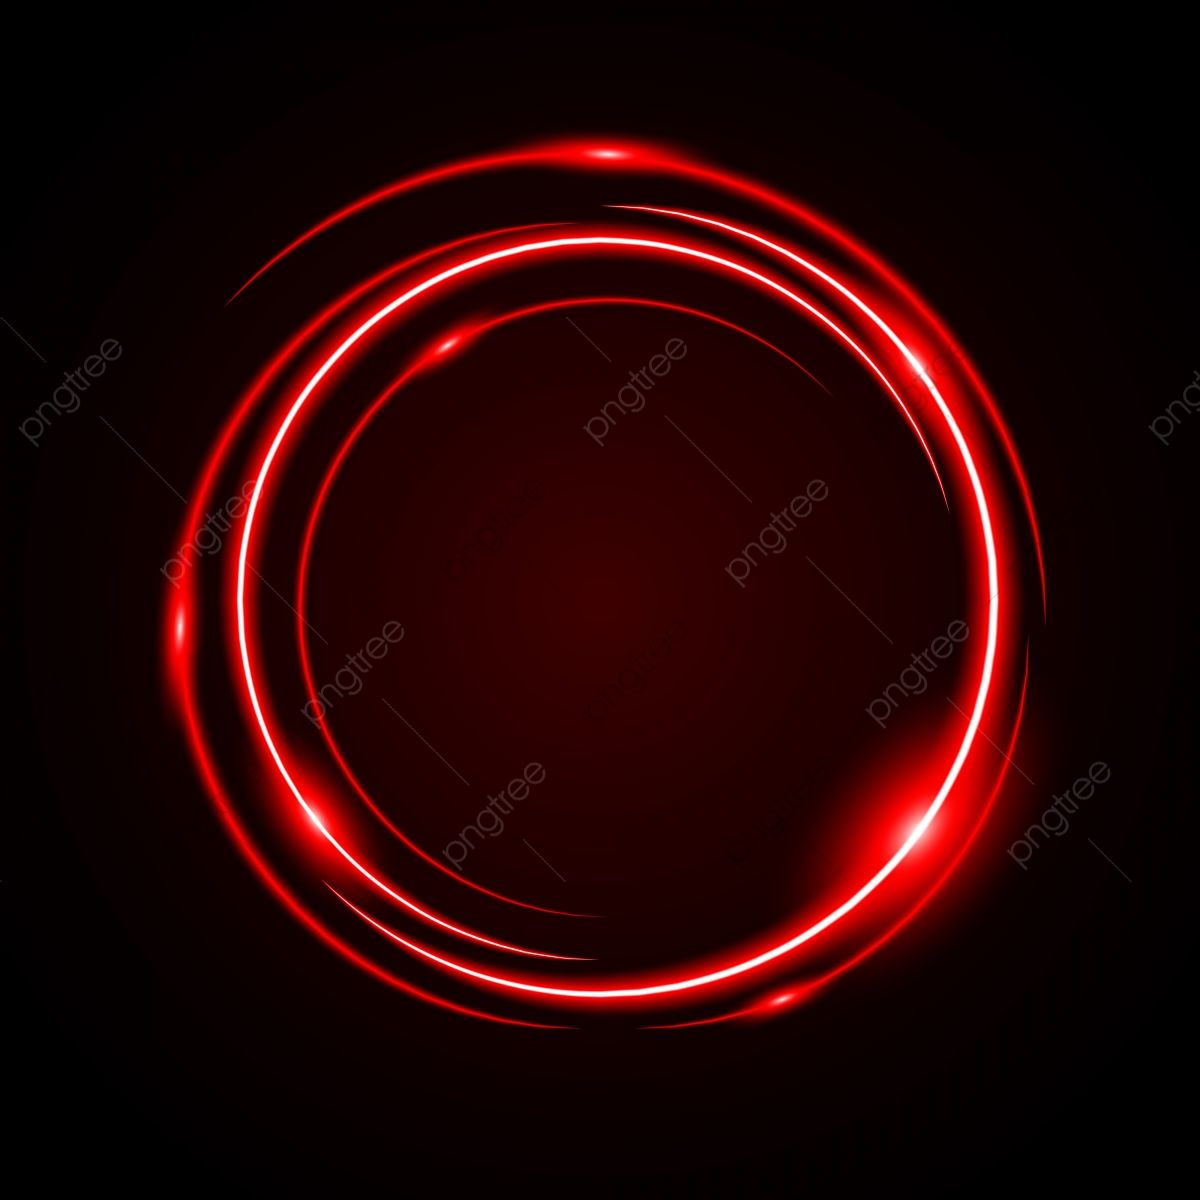 Abstract Circle Light Red Frame Vector Background Red Light Circle Png And Vector With Transparent Background For Free Download Circle Light Vector Background Red Frame